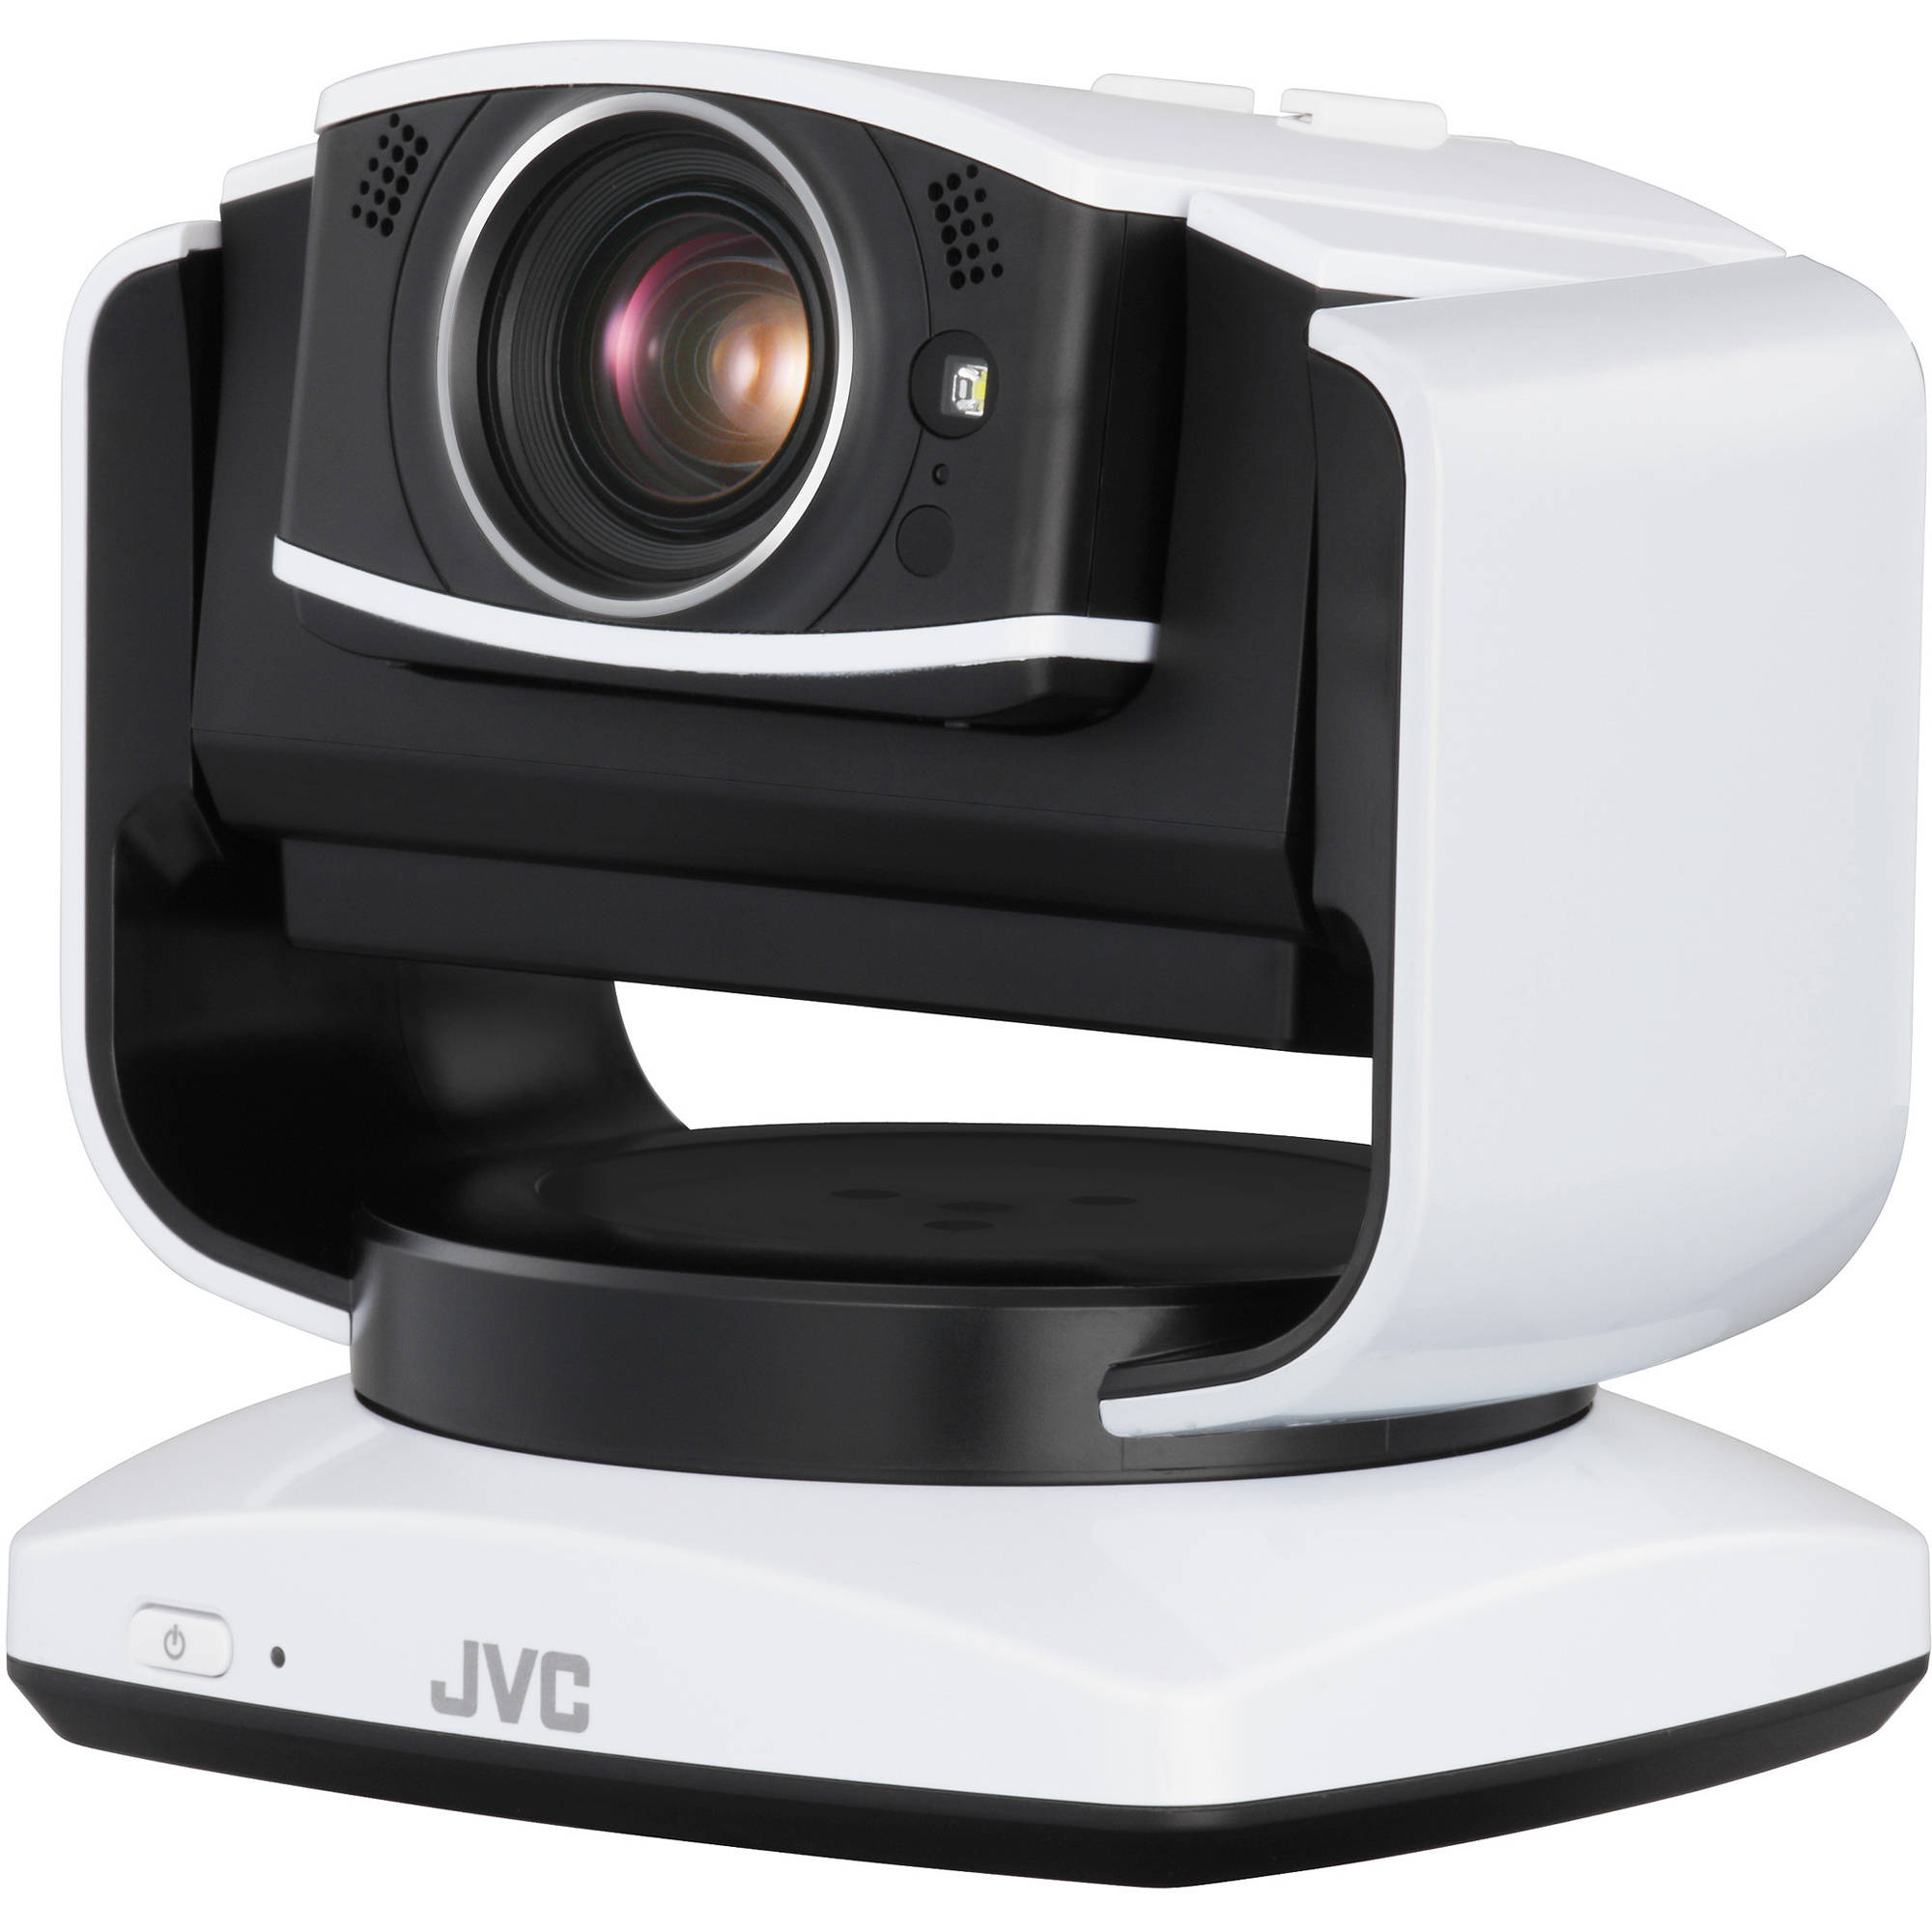 Jvc jvc gv ls2 live streaming camera gv ls2wus b h photo video for Camera streaming live